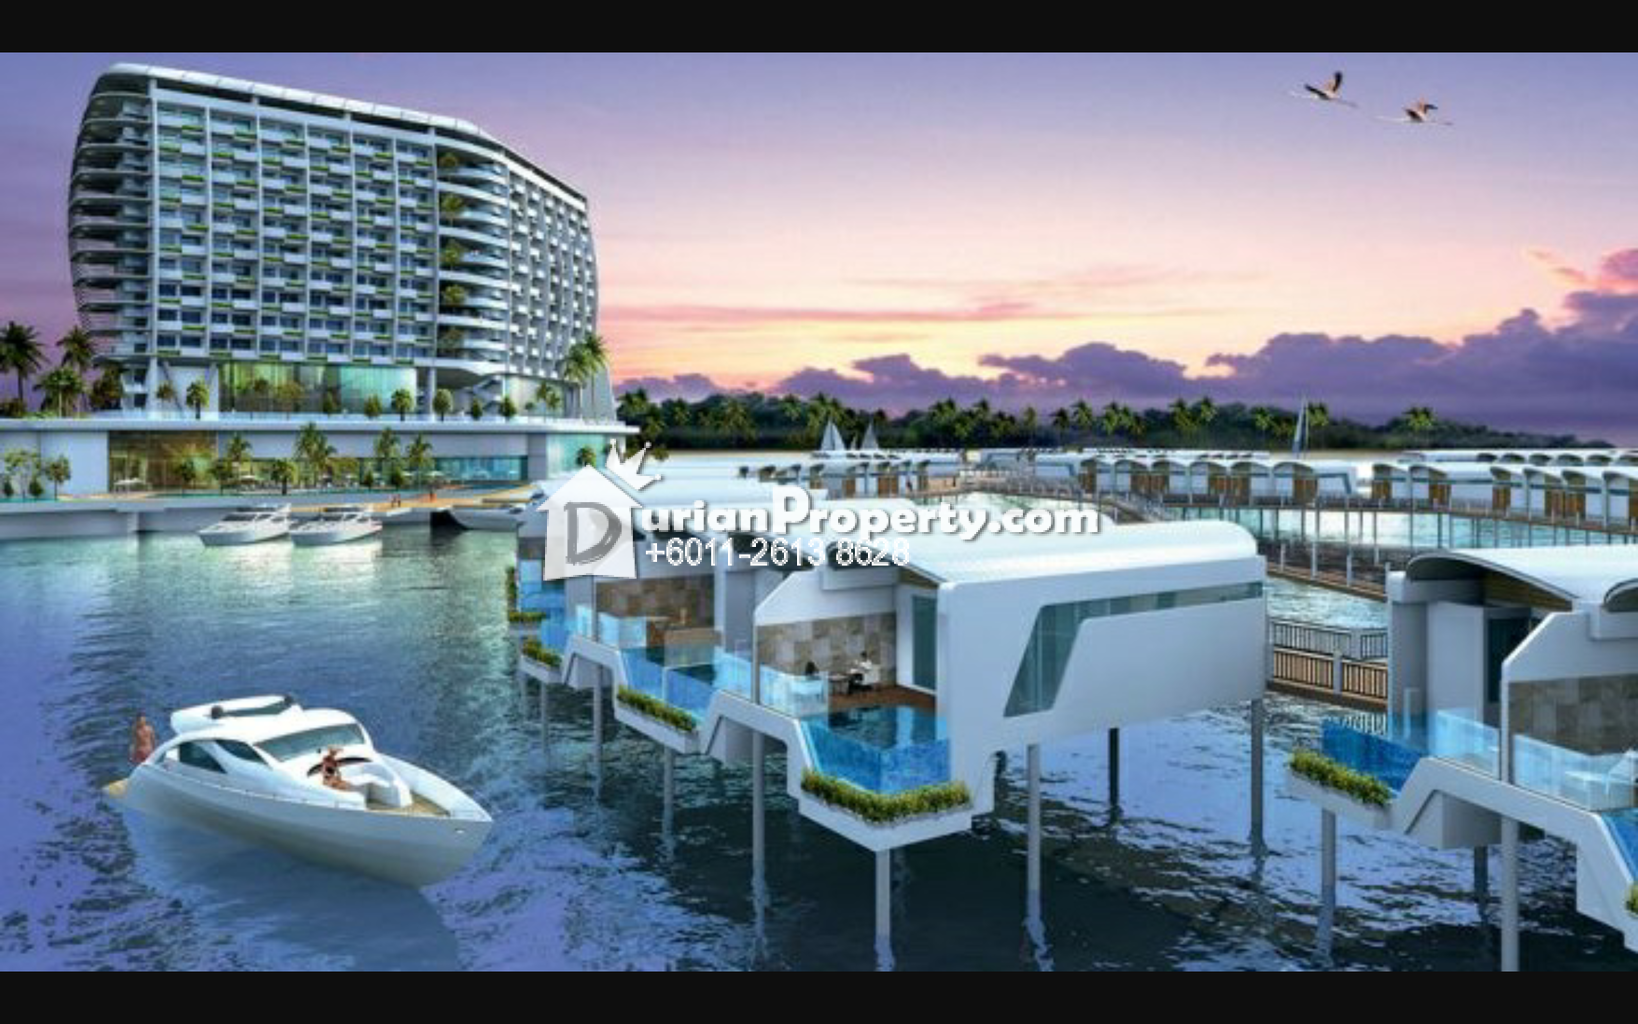 Best Buy Private Auction >> Resort For Sale at Grand Lexis, Port Dickson for RM 750,000 by Alex Lee | DurianProperty